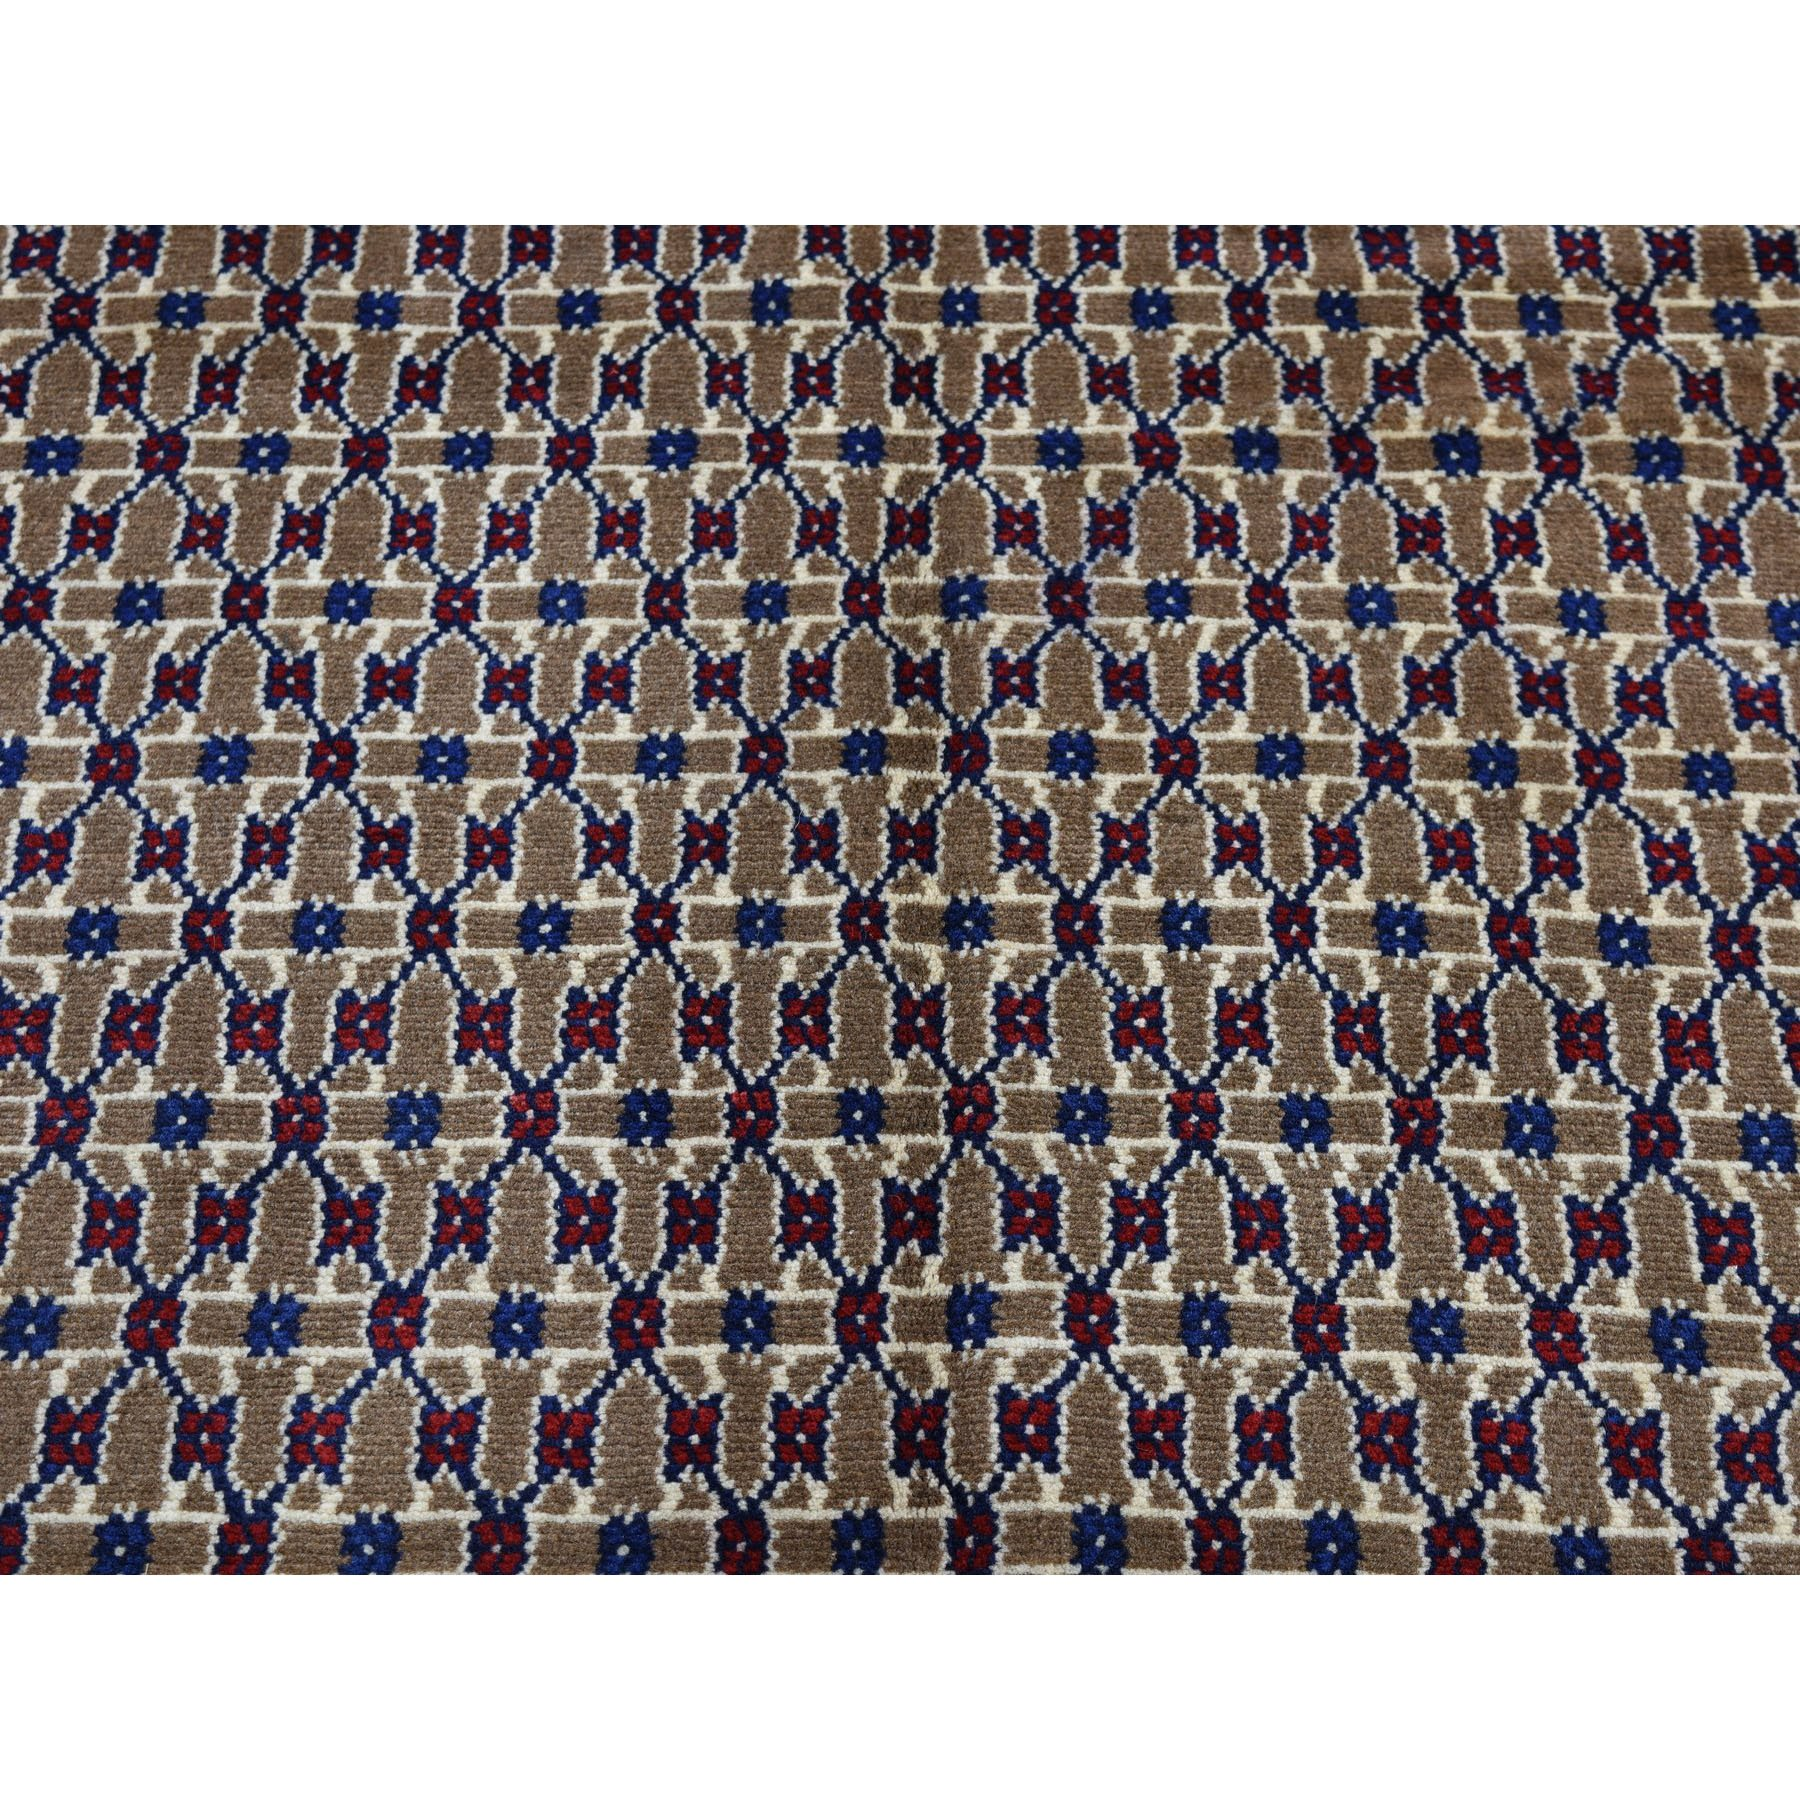 6-8 x9-1  Beige New persian Camel Hair Serab Pure Wool Hand Knotted Oriental Rug